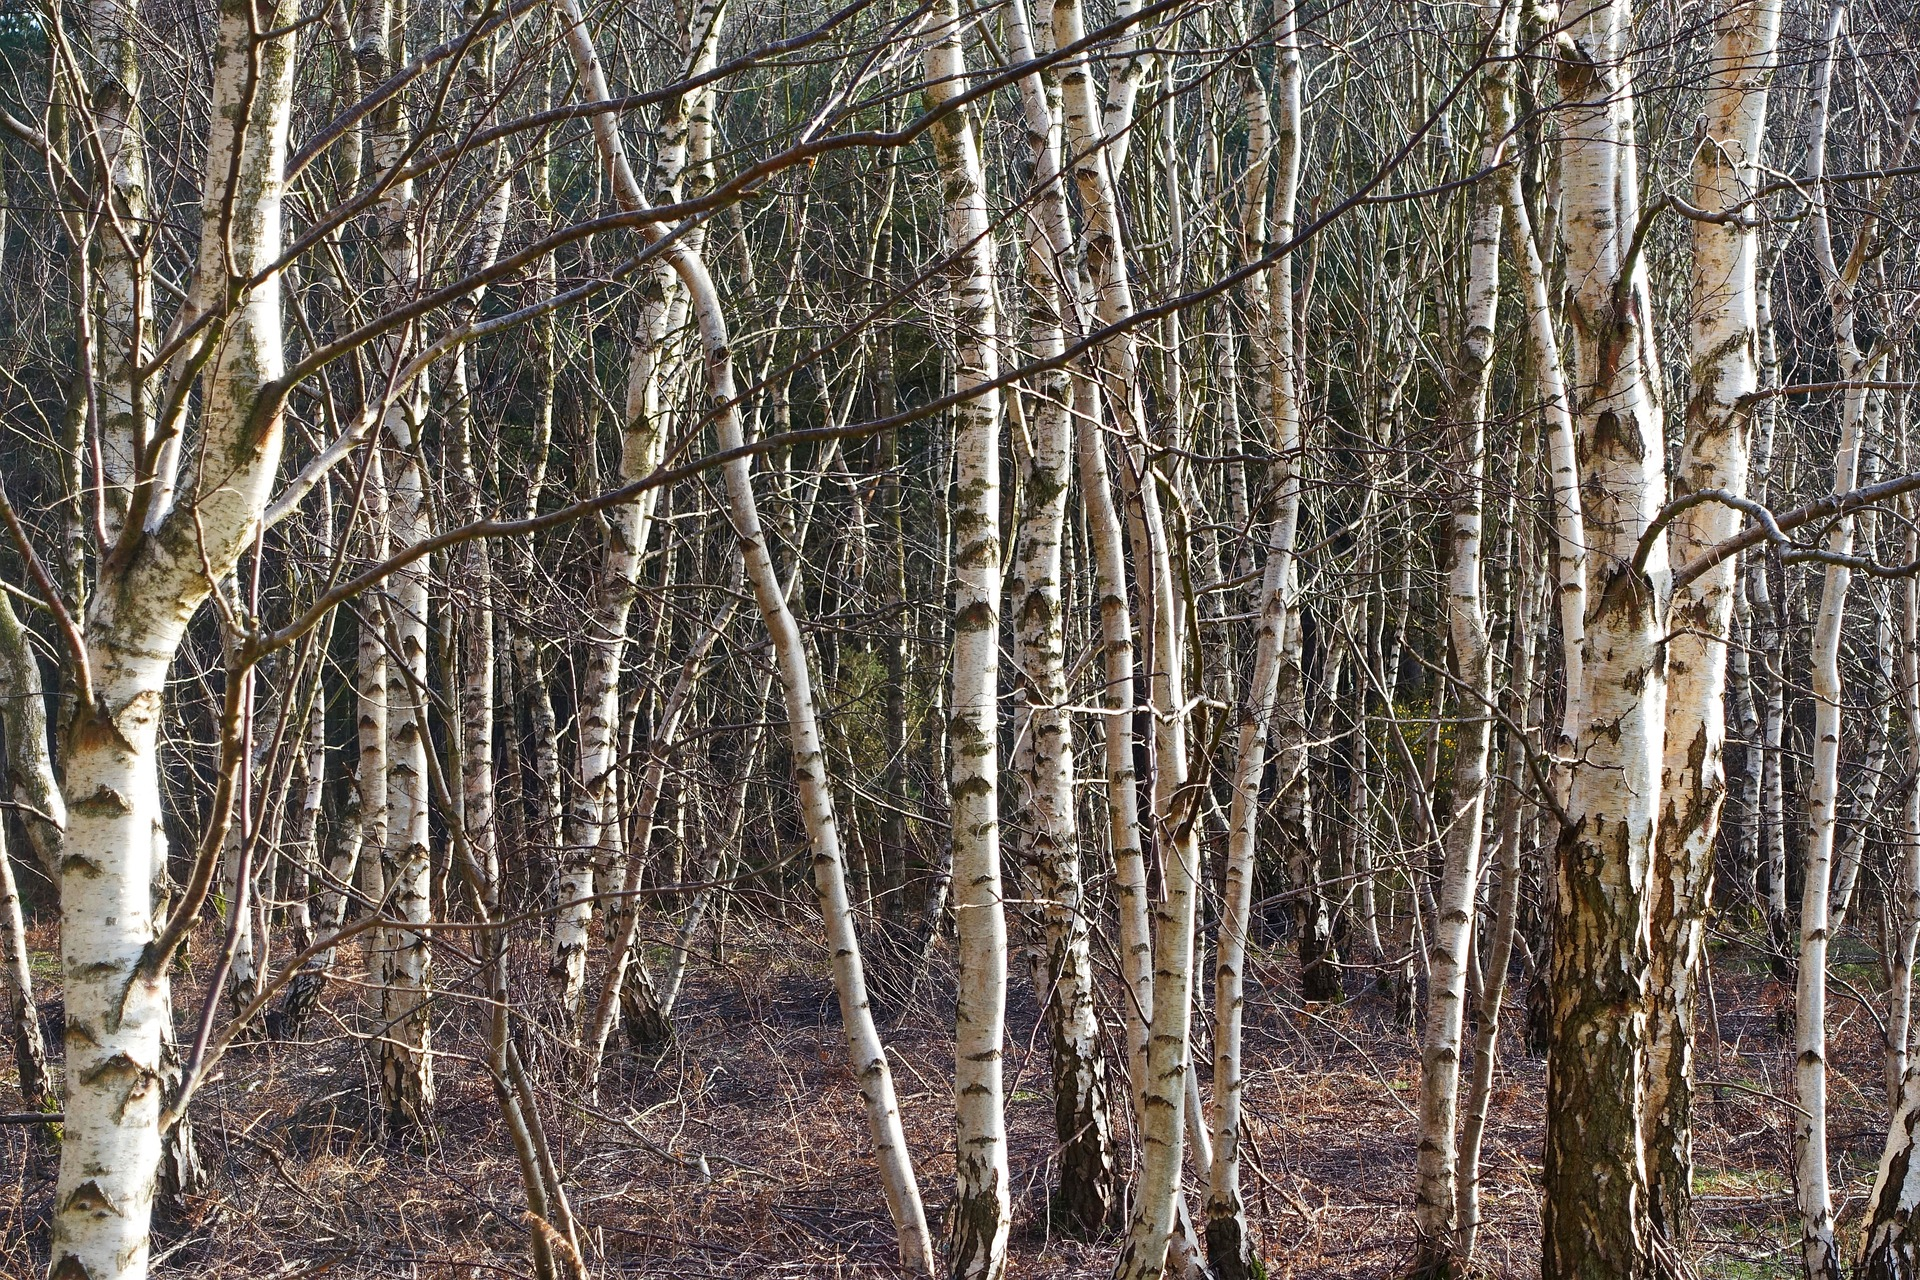 Above: Birch trees' adaptability resonates with life at the moment.